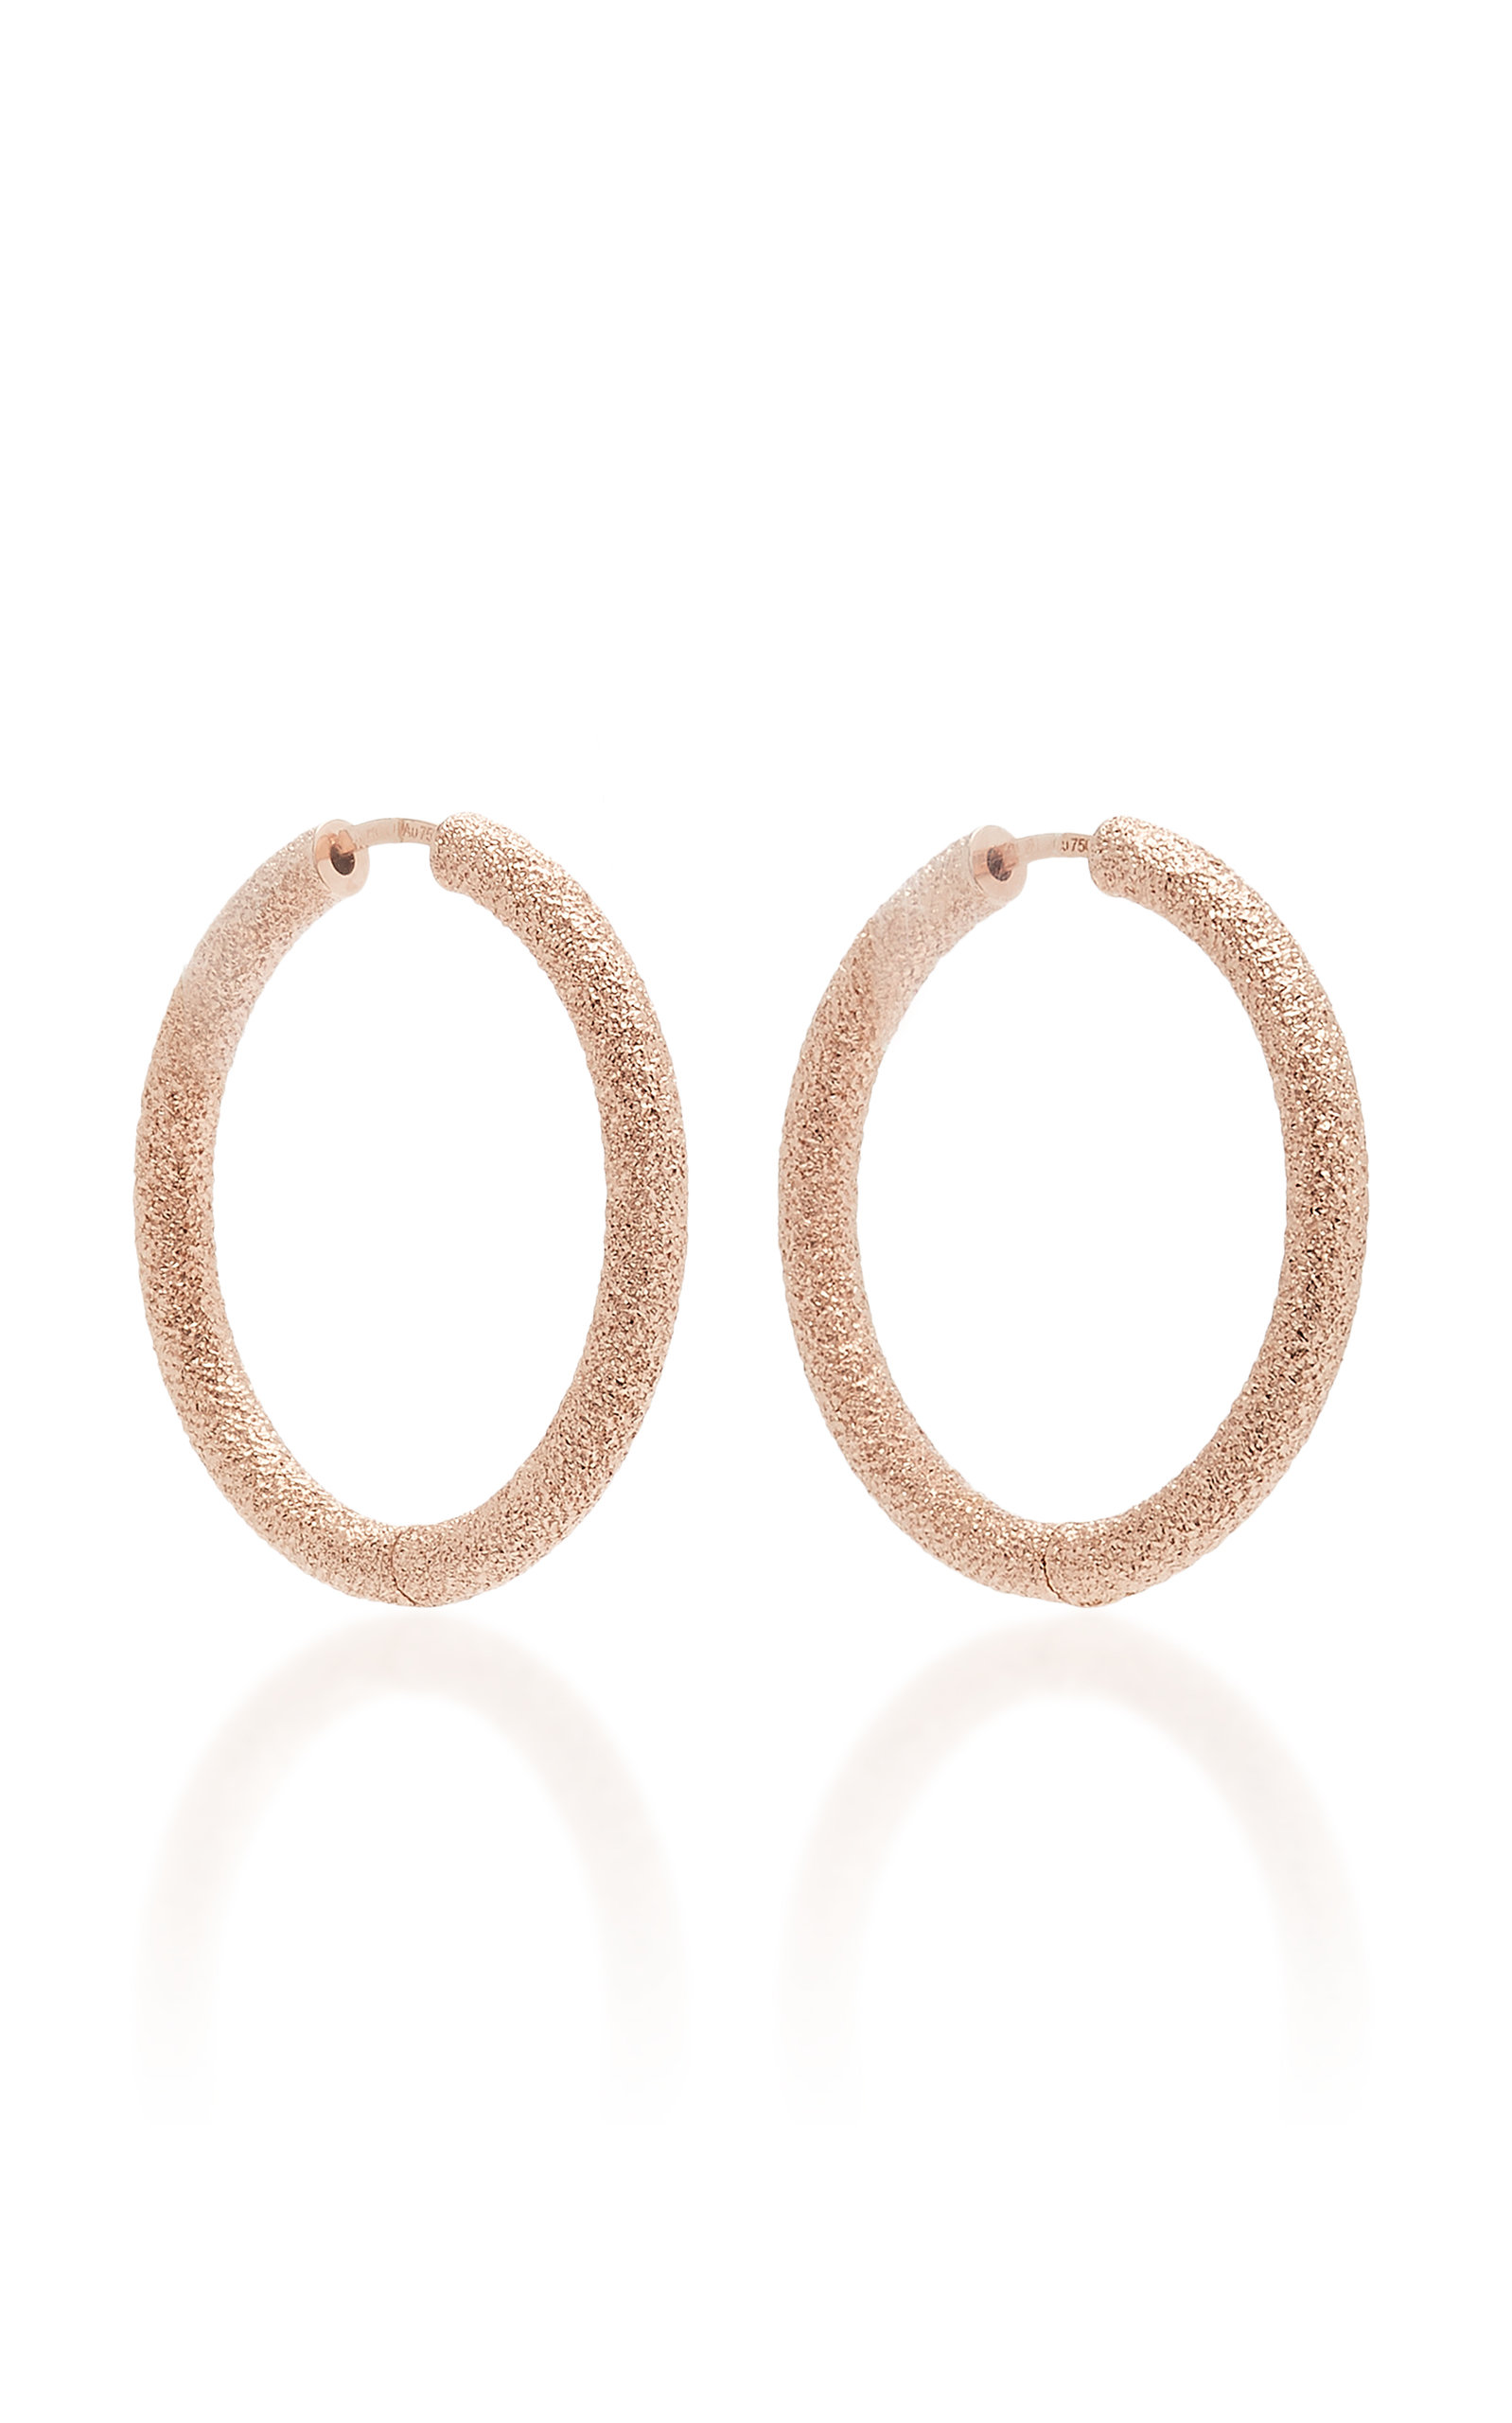 CAROLINA BUCCI FLORNTINE FINISH SMALL THICK ROUND HOOP EARRINGS